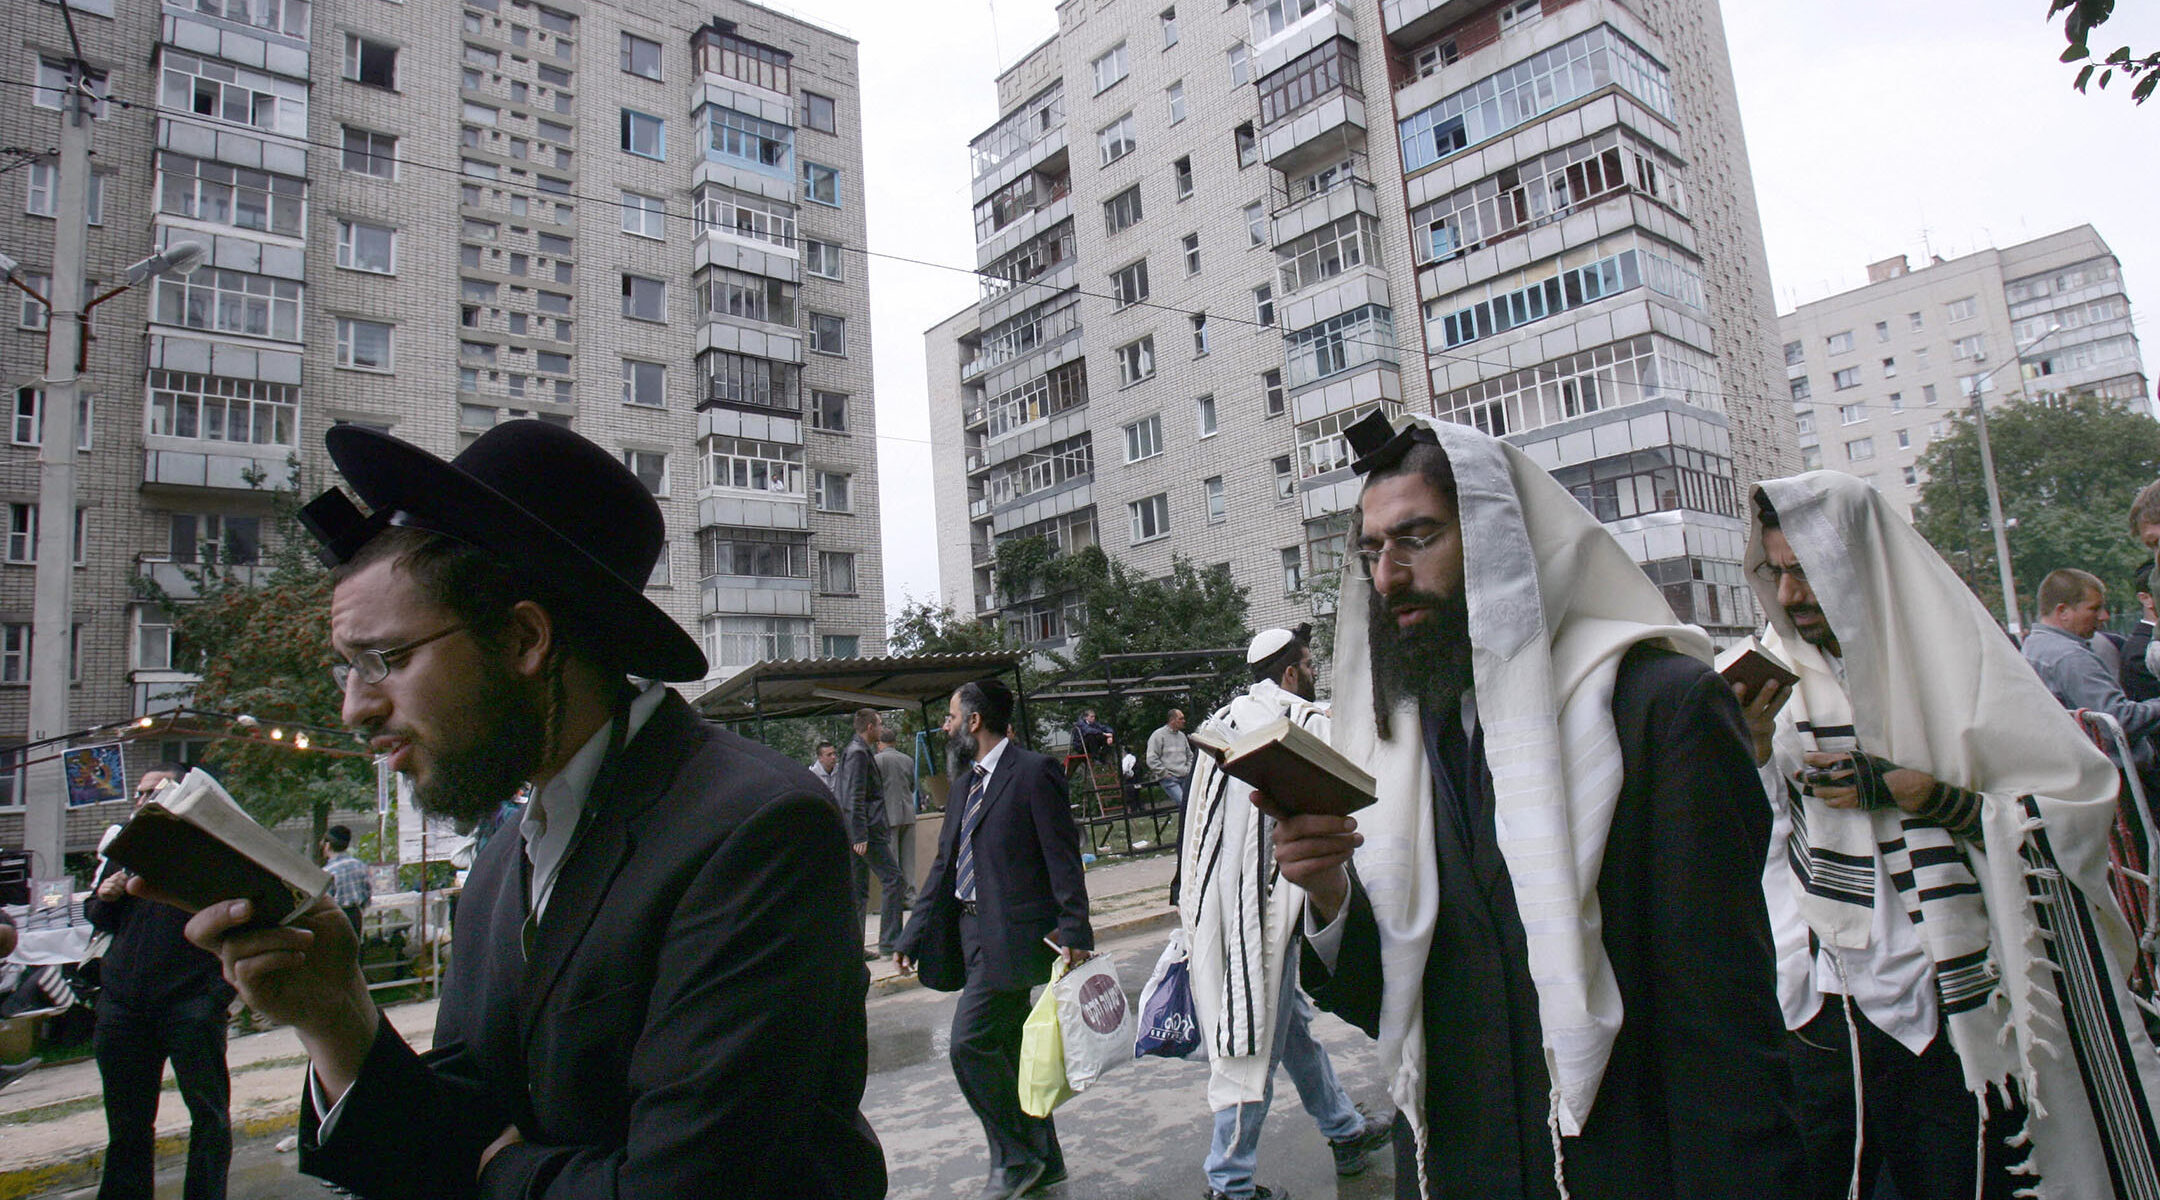 Jews pray on a street near the tomb of Reb Nachman of Breslov in Uman, Ukraine, on Sept. 20, 2006. (Menahem Kahana/AFP via Getty Images)